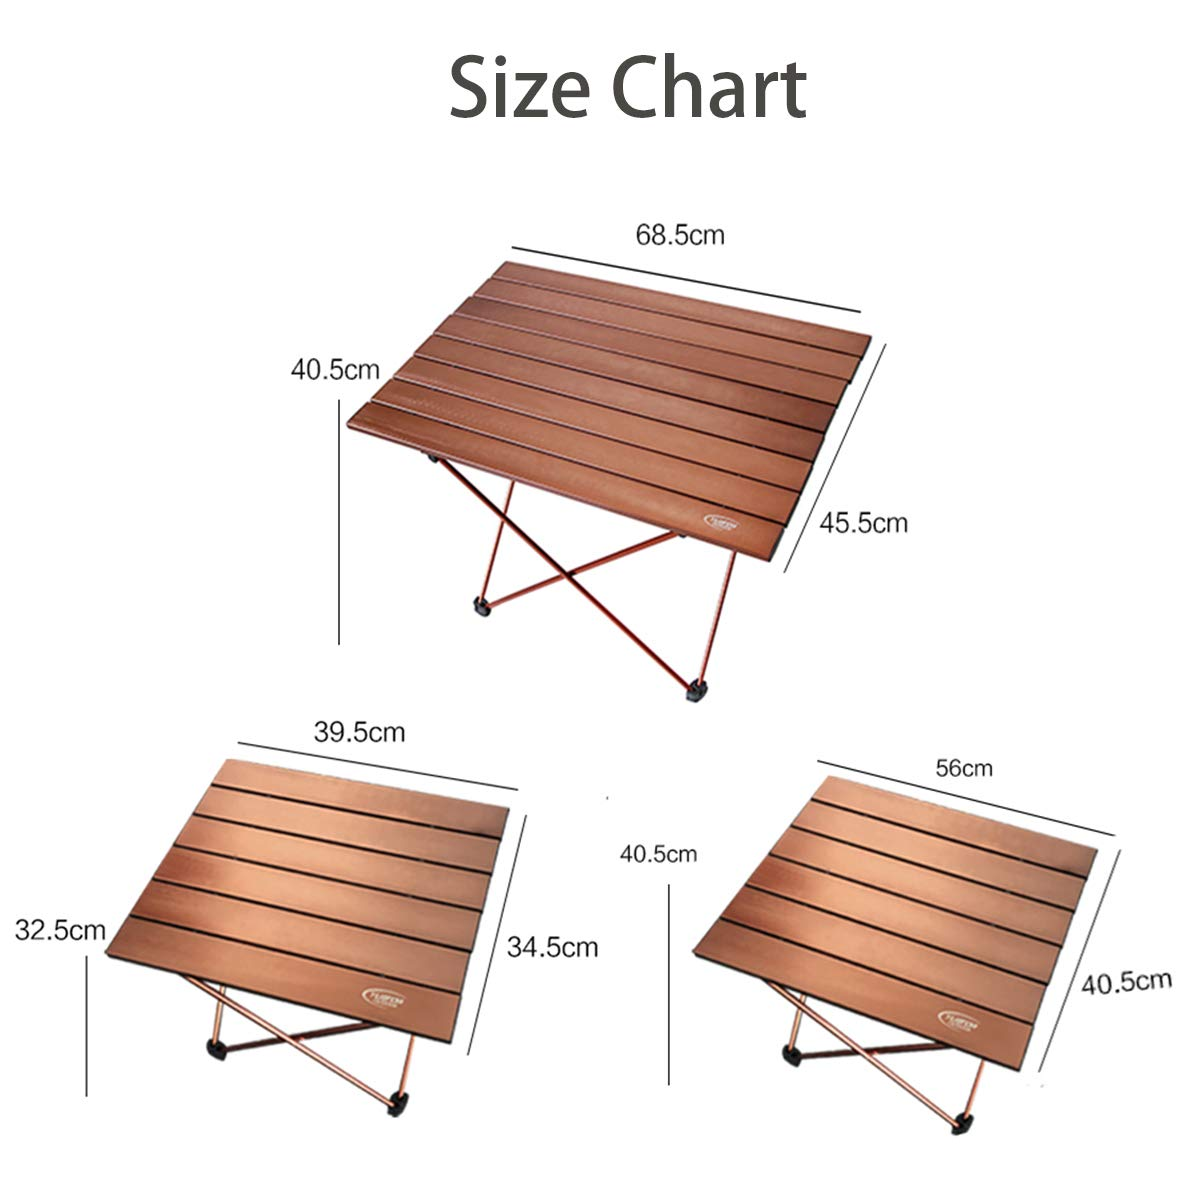 15.5 /× 13.6 Portable Folding Camping Table 2.2lbs Lightweight Compact Outdoor Table Desk up to 50.7lbs for Beach